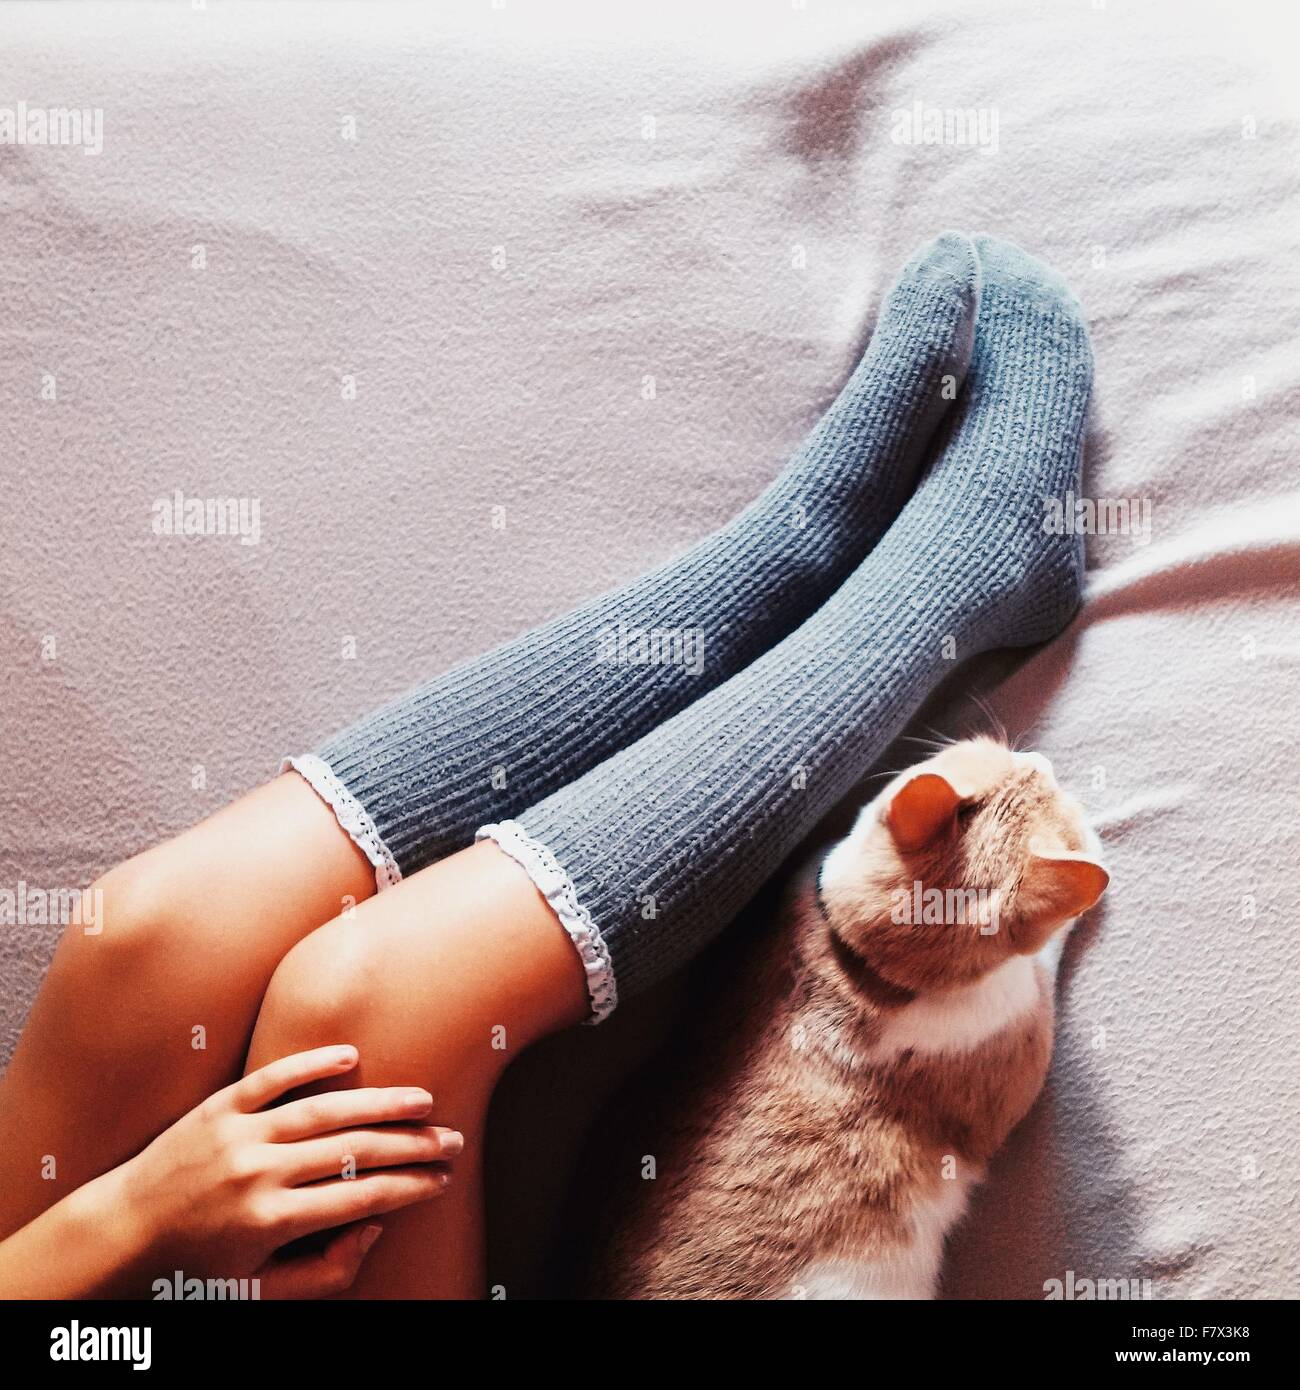 Woman's legs in long socks and cat lying on a bed - Stock Image